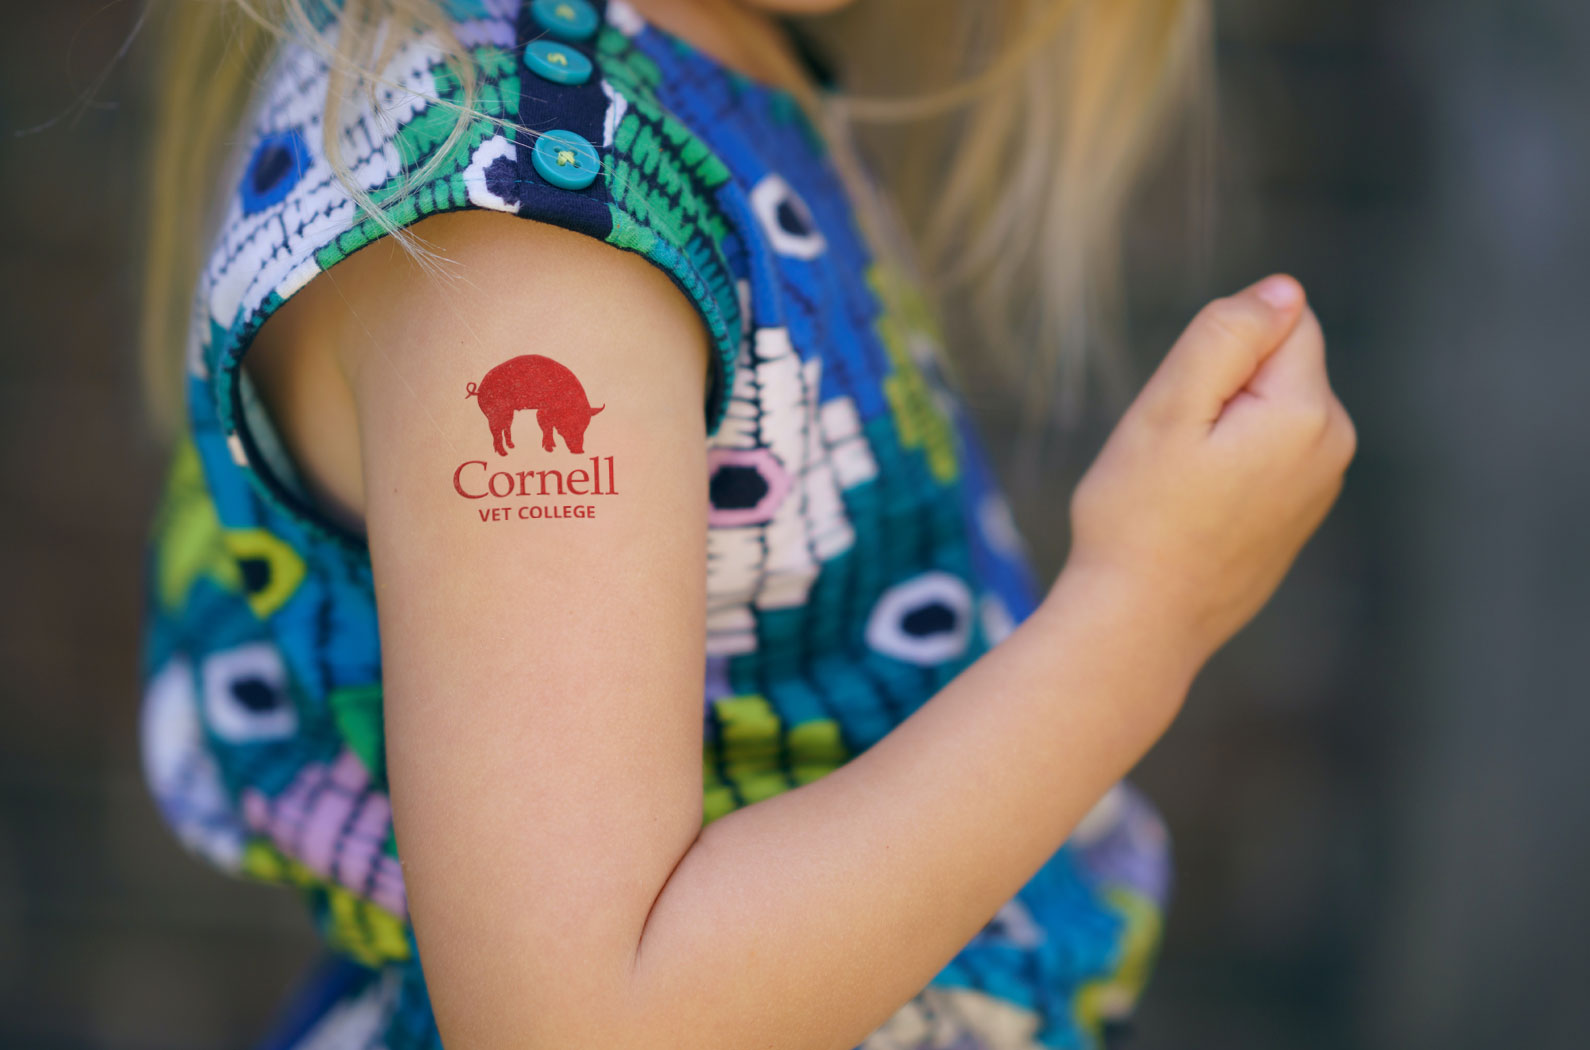 Cornell Vet College Temporary Pig Tattoo